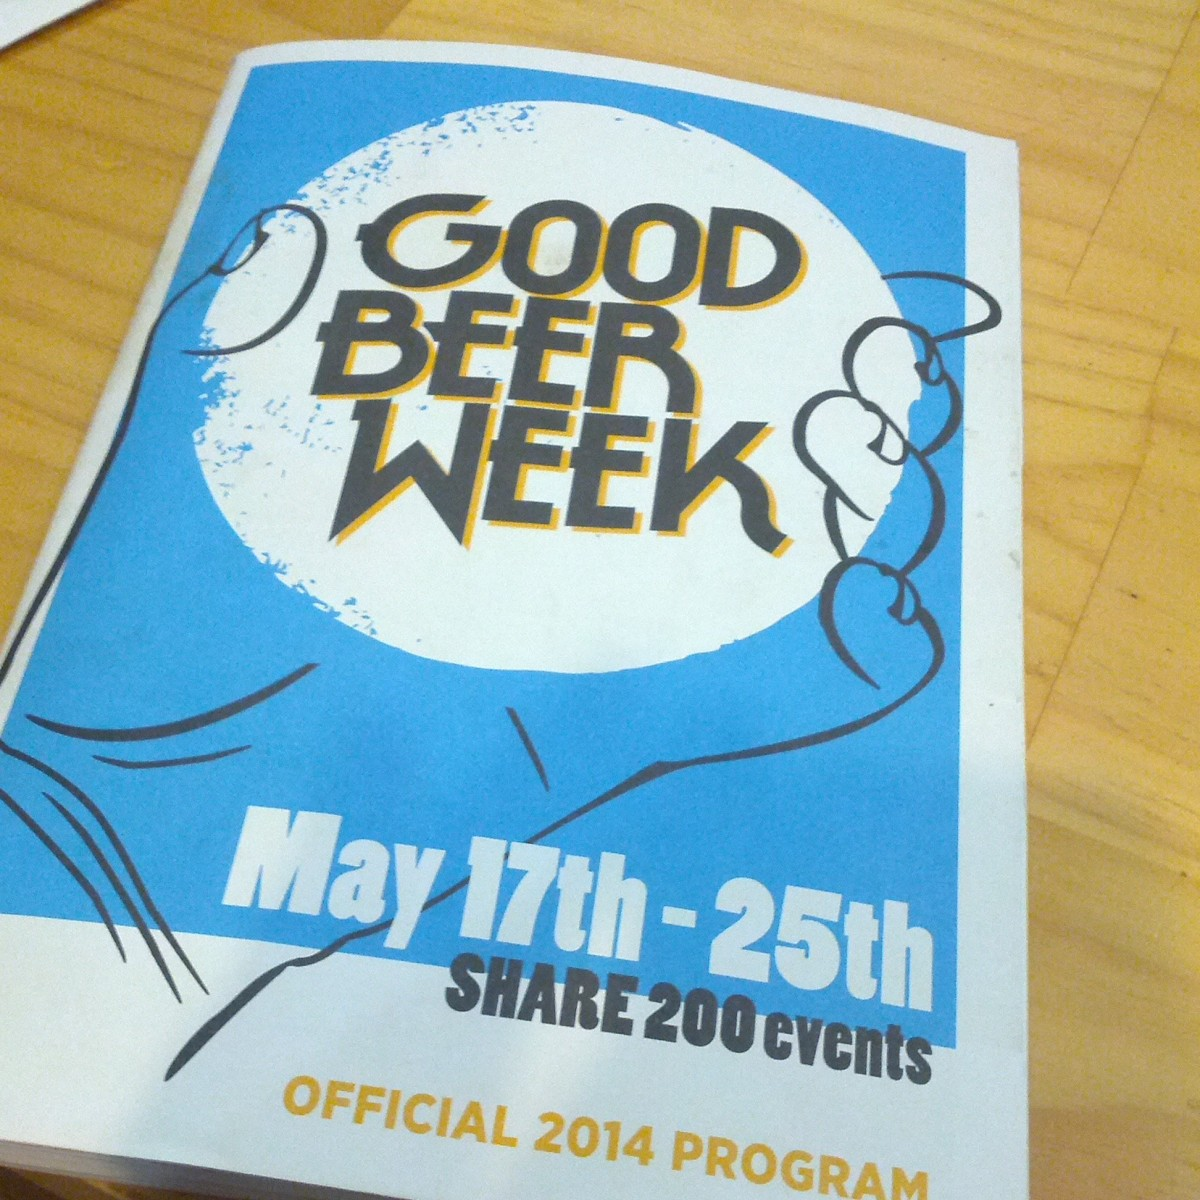 Good Beer Week 2014